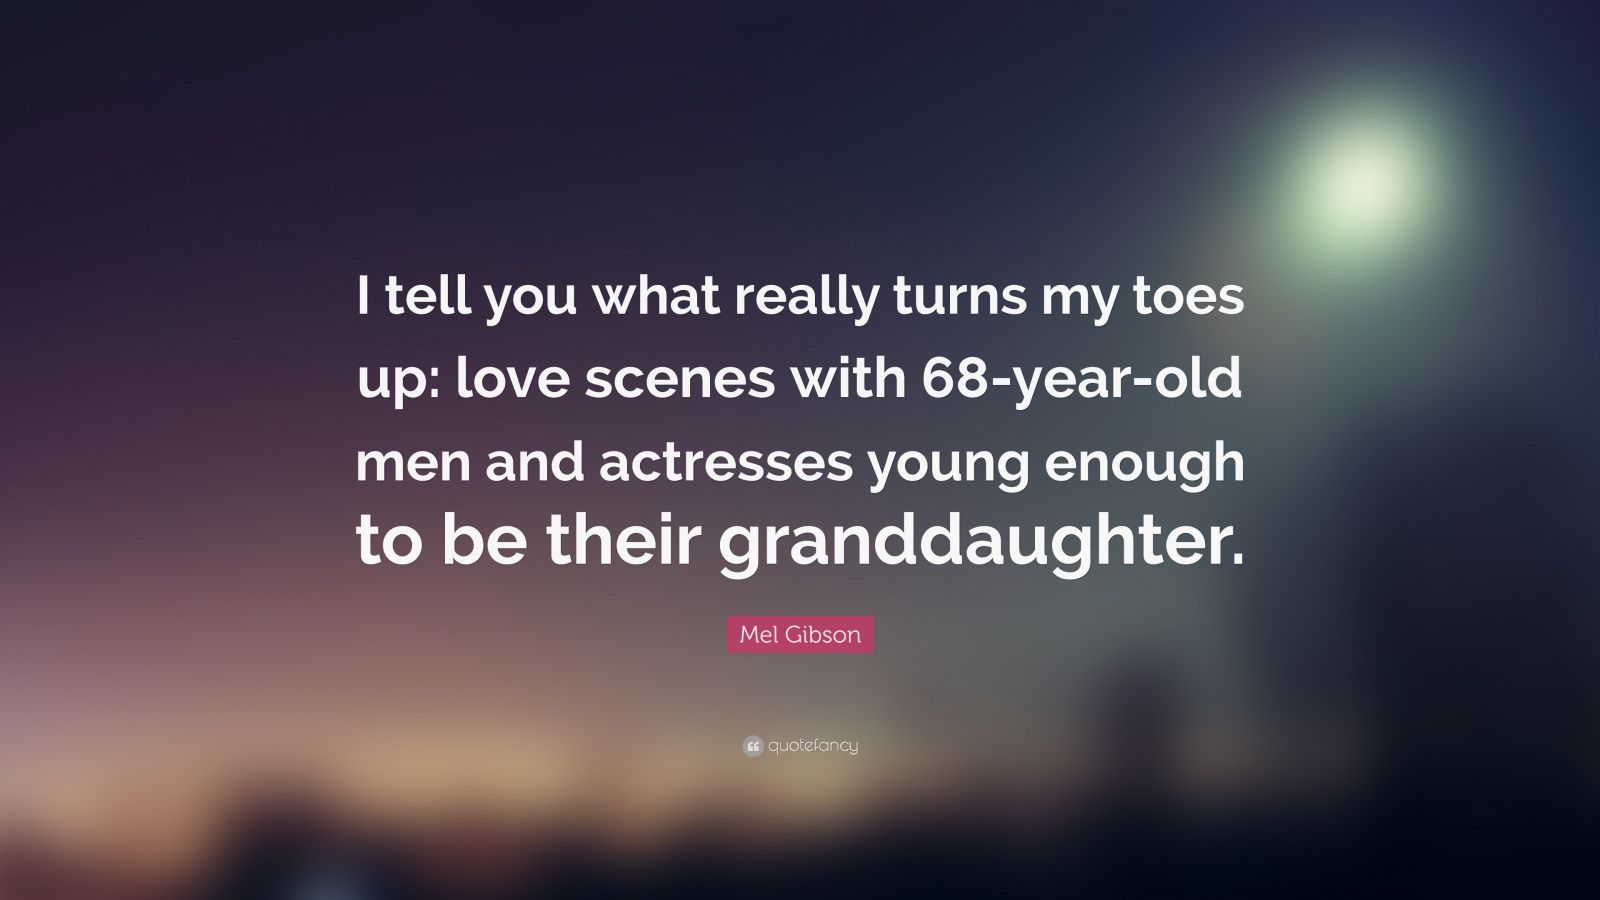 """Mel Gibson Quote: """"I tell you what really turns my toes up: love scenes with 68-year-old men and actresses young enough to be their granddaughter."""""""